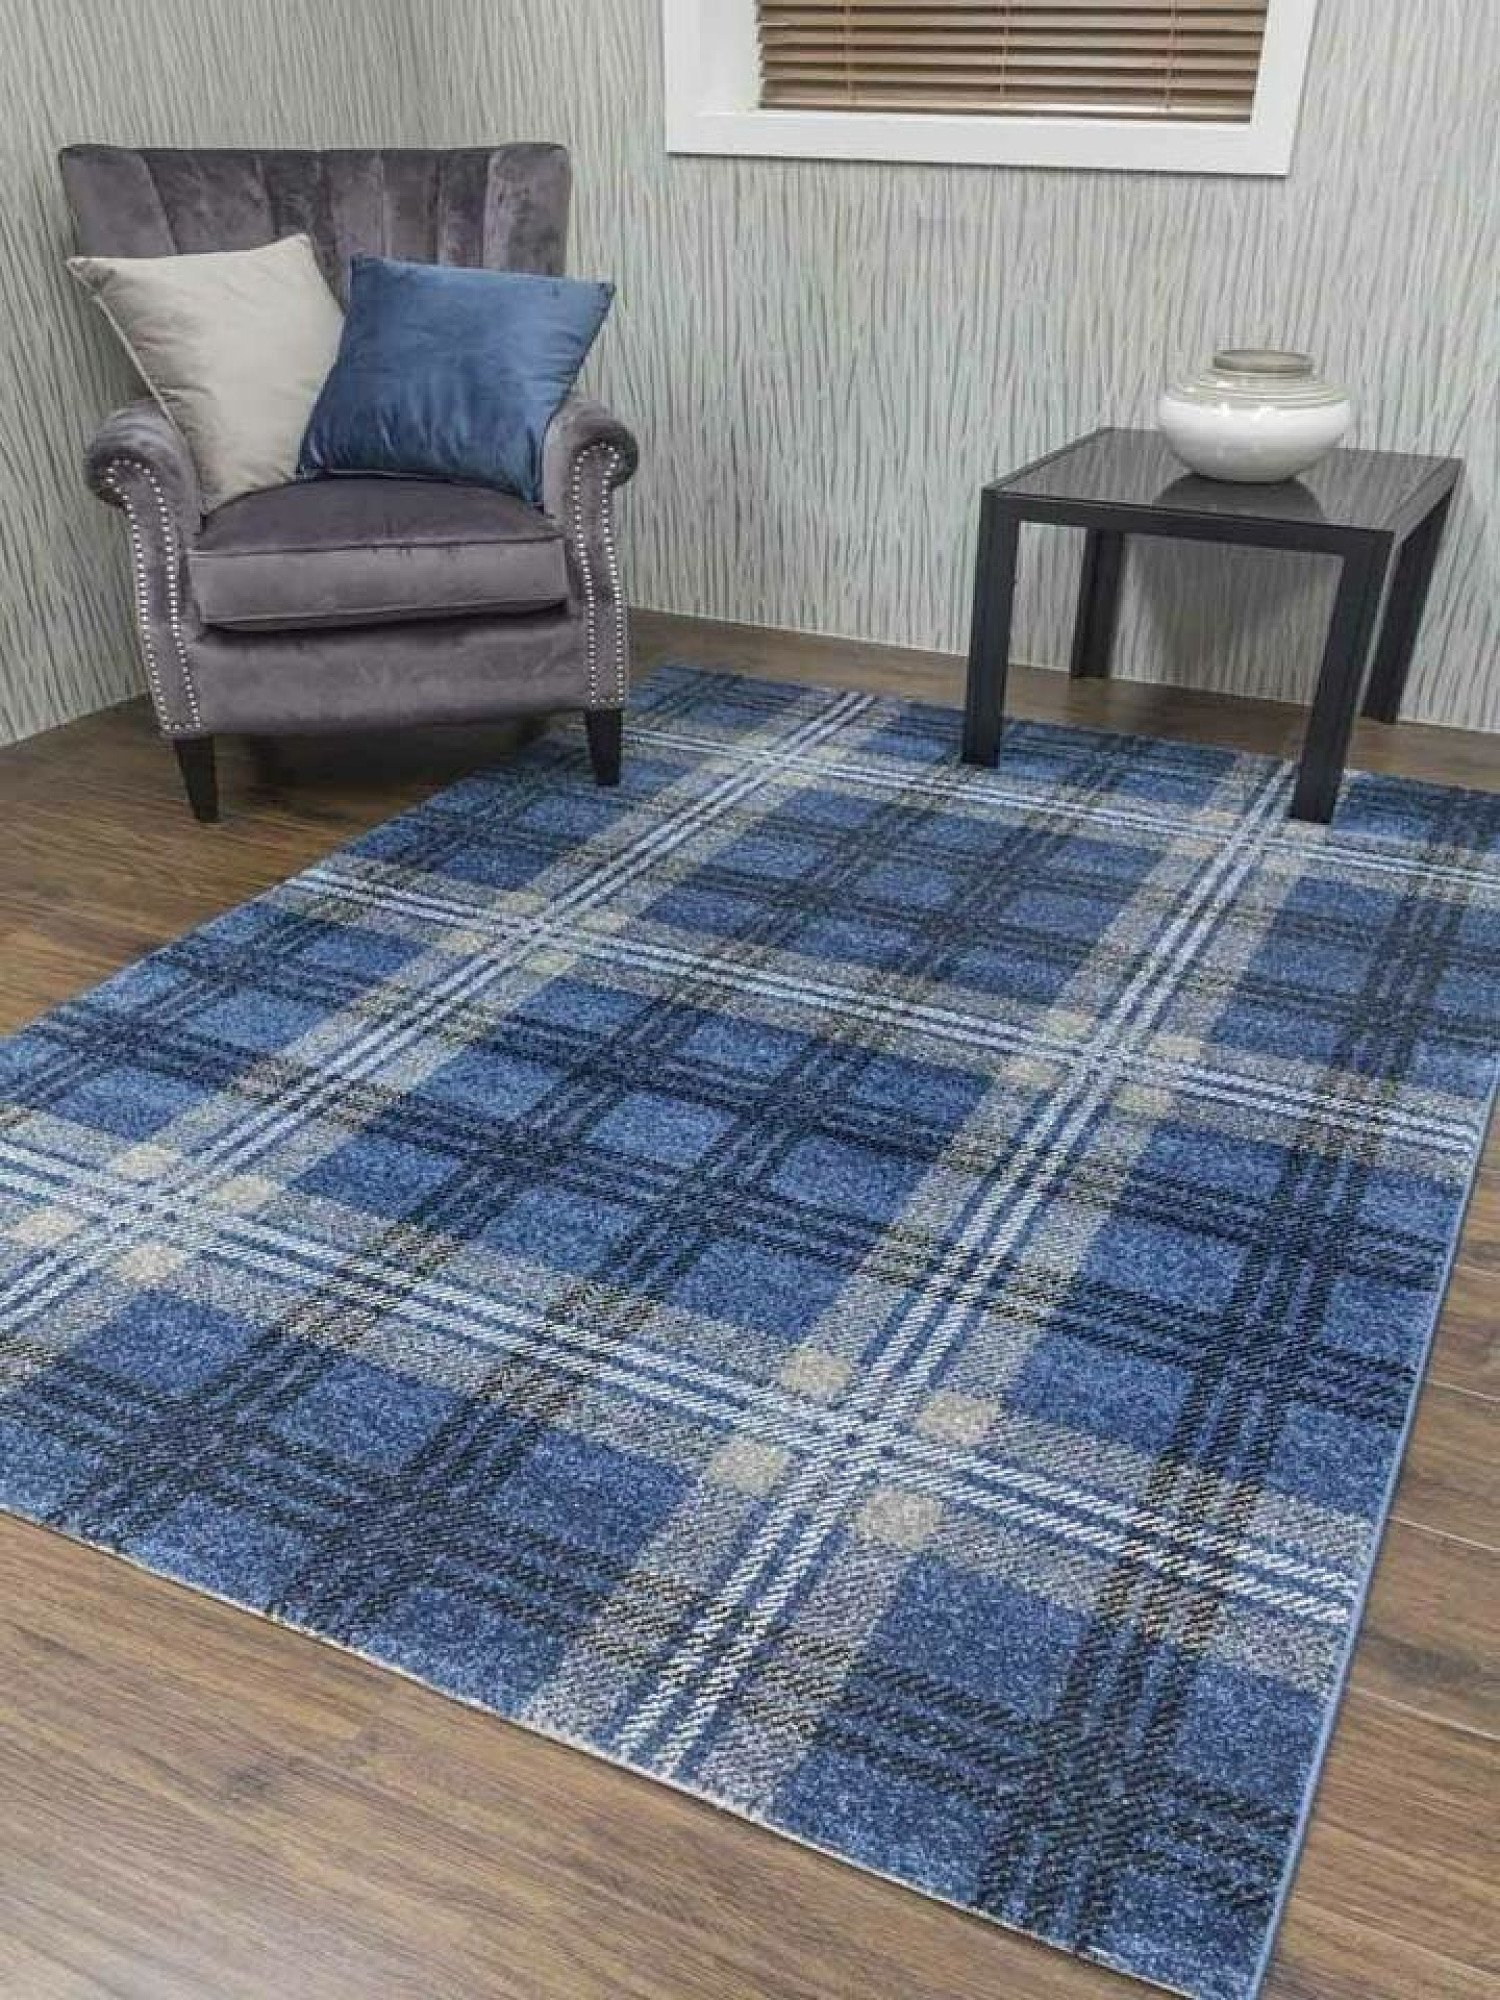 Glendale Denim Blue Tartan Rug - different sizes and prices in description- Free Postage